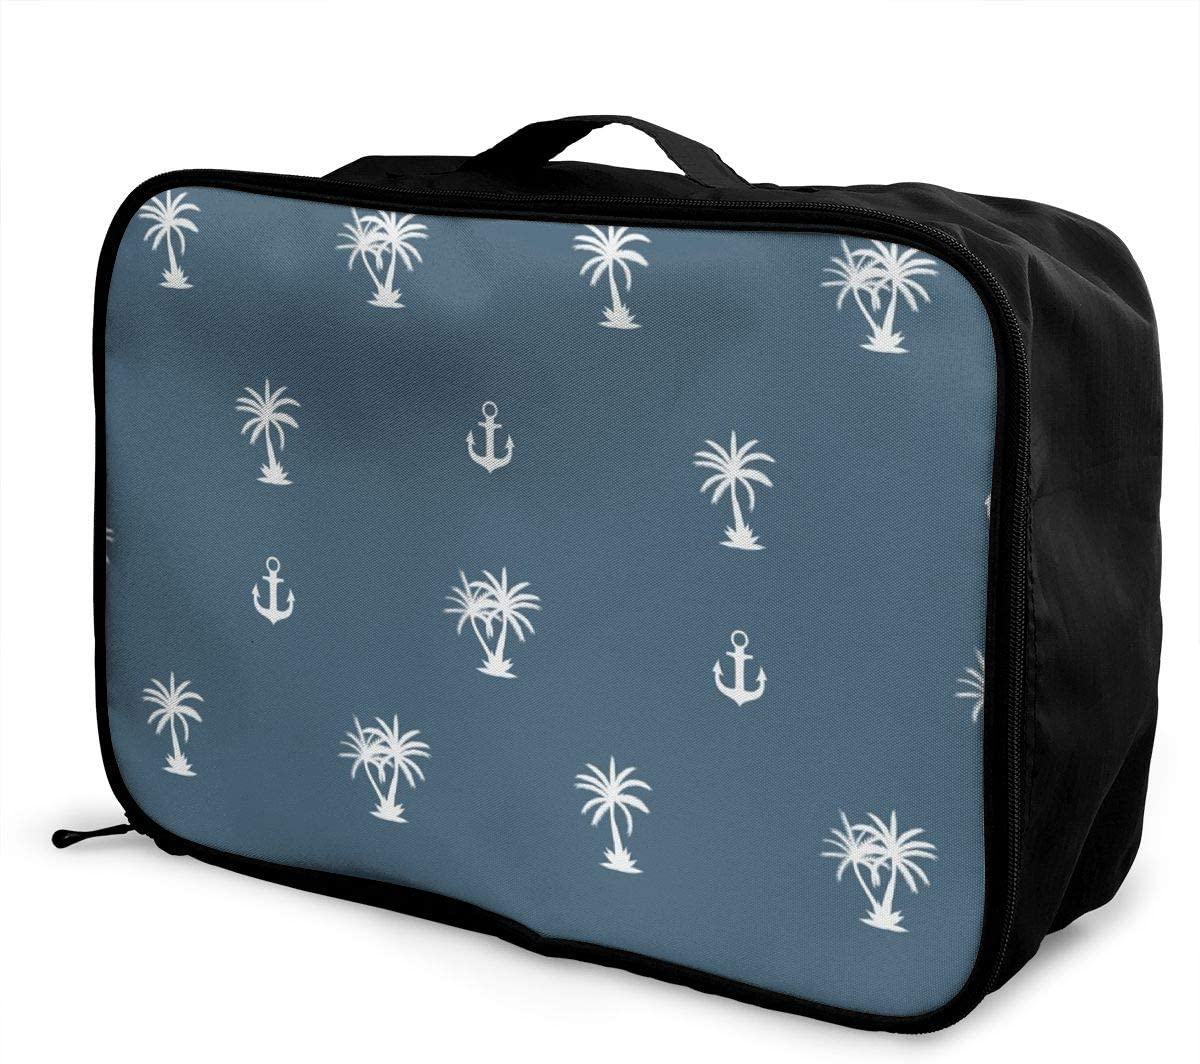 Yunshm Palm Tree Personalized Trolley Handbag Waterproof Unisex Large Capacity For Business Travel Storage